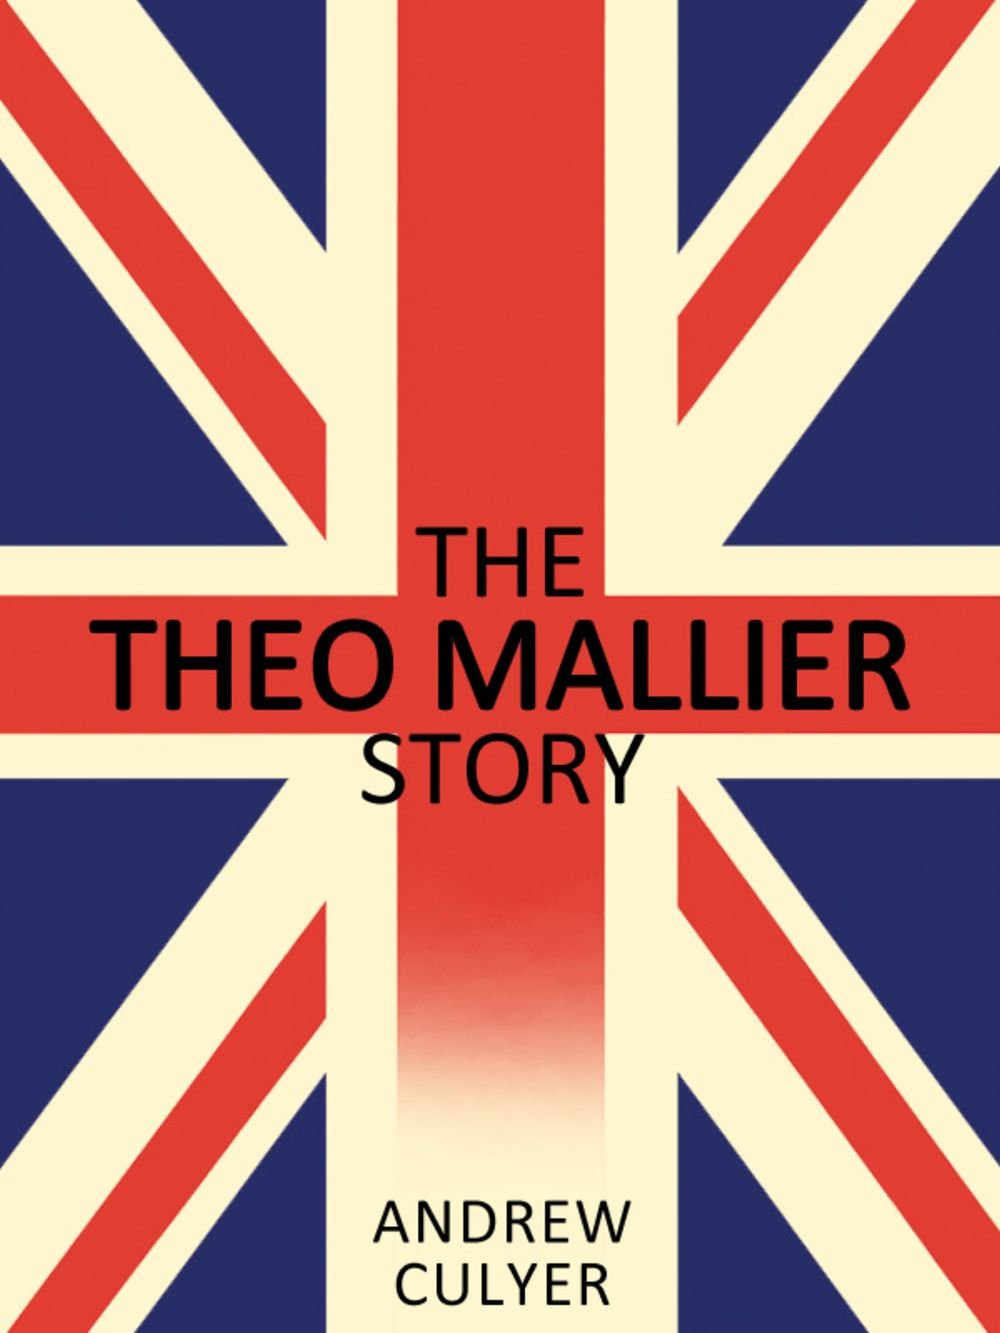 Image OfThe Theo Mallier Story (Political Fiction) (English Edition)